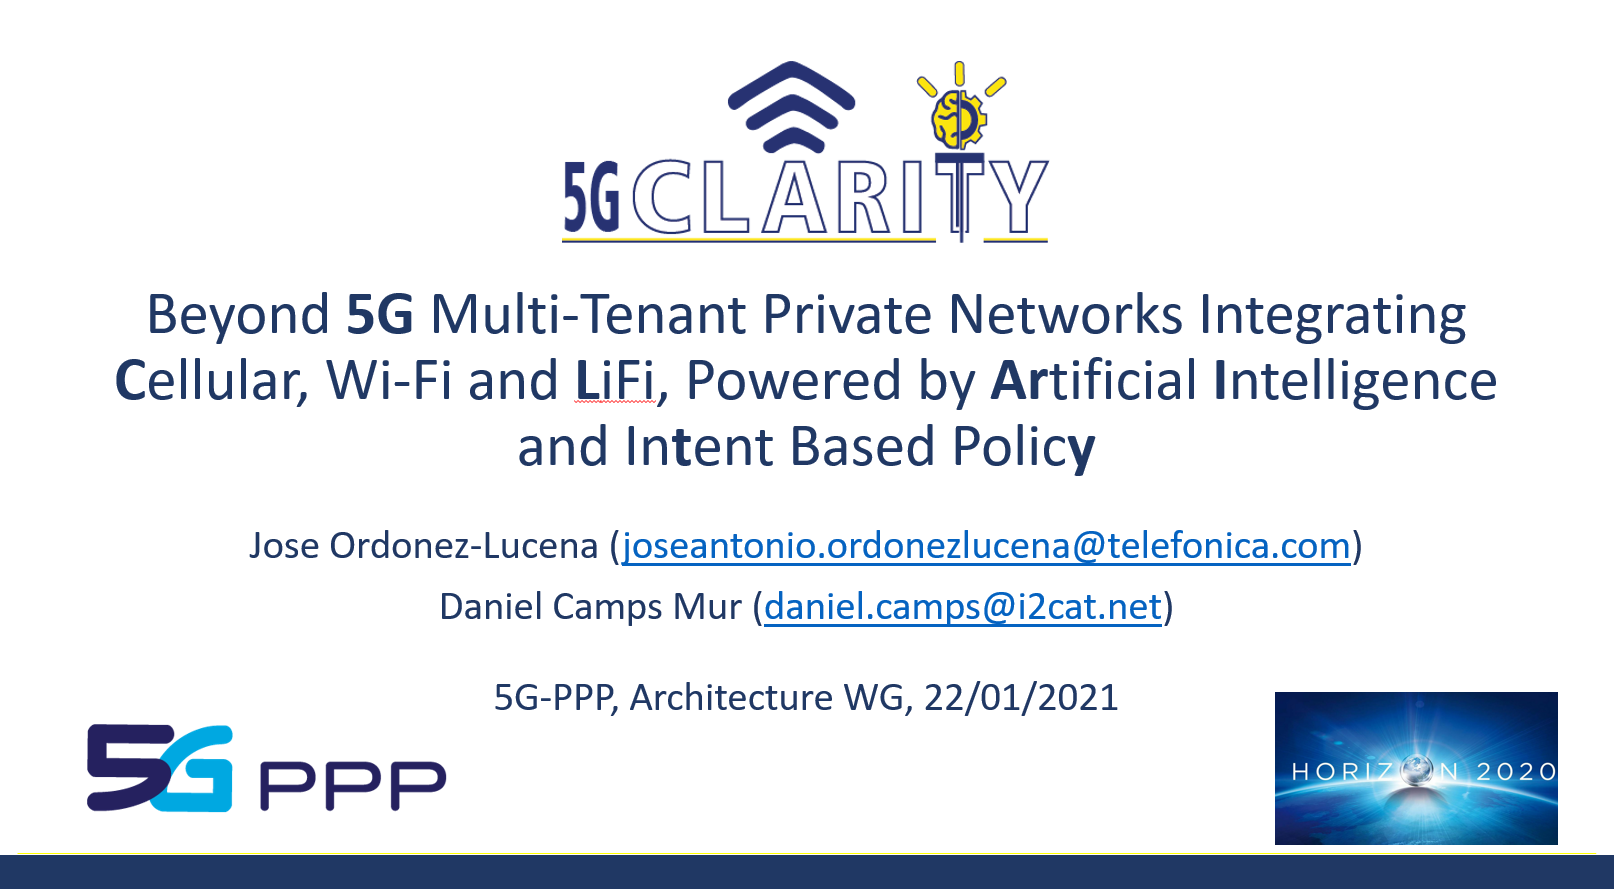 The latest on 5G-CLARITY architecture, innovation and use cases